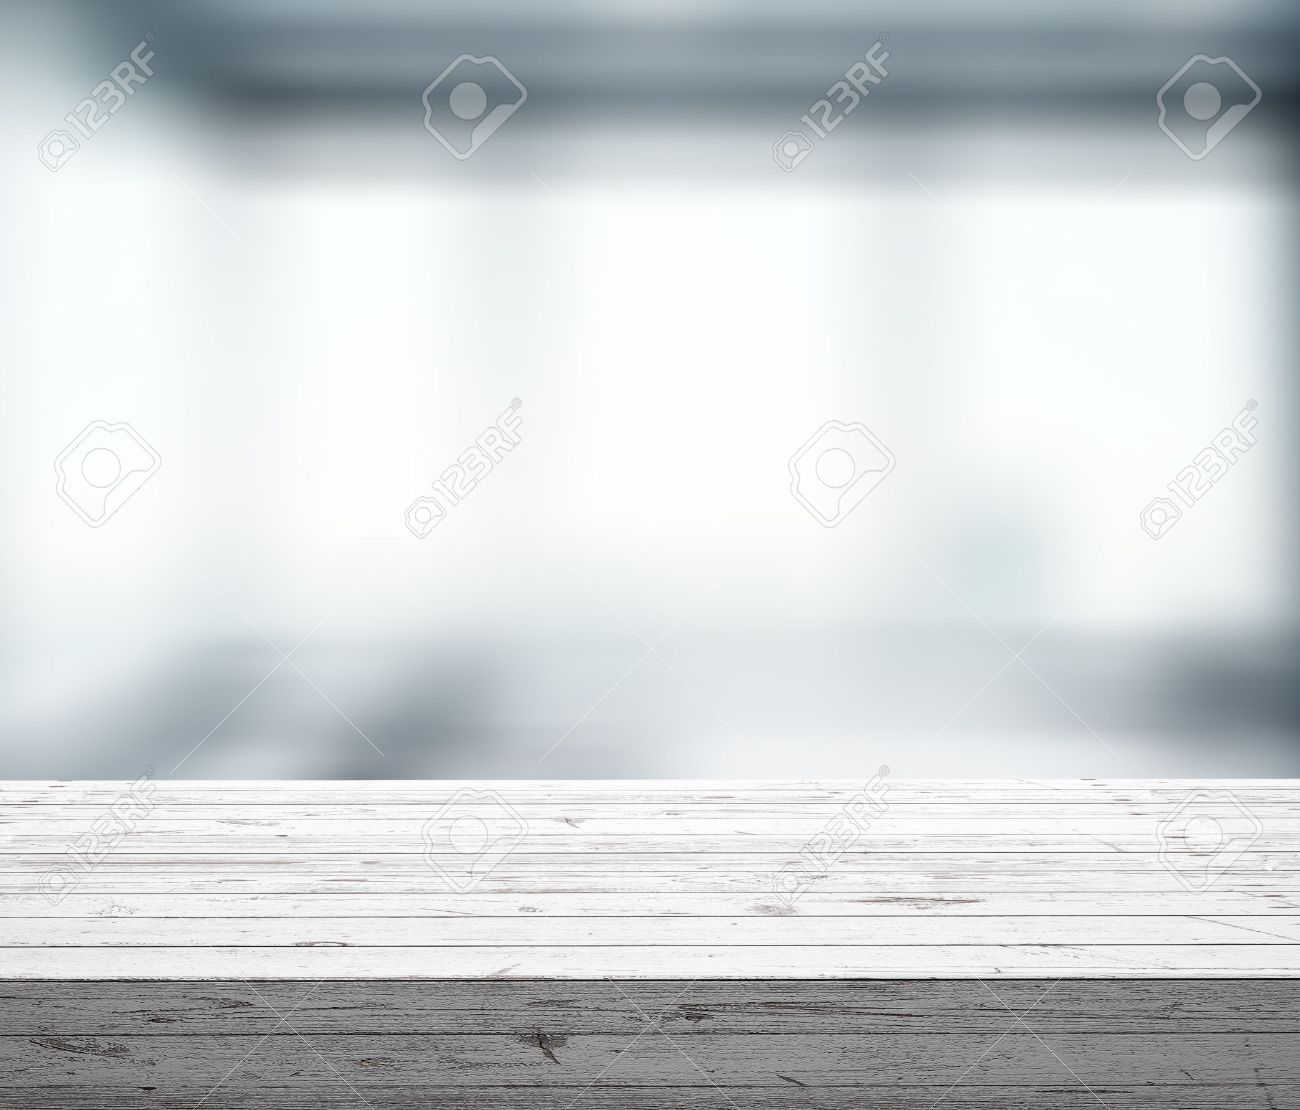 Plain wood table with hipster brick wall background stock photo - Wooden Table With Window Bokeh Close Up